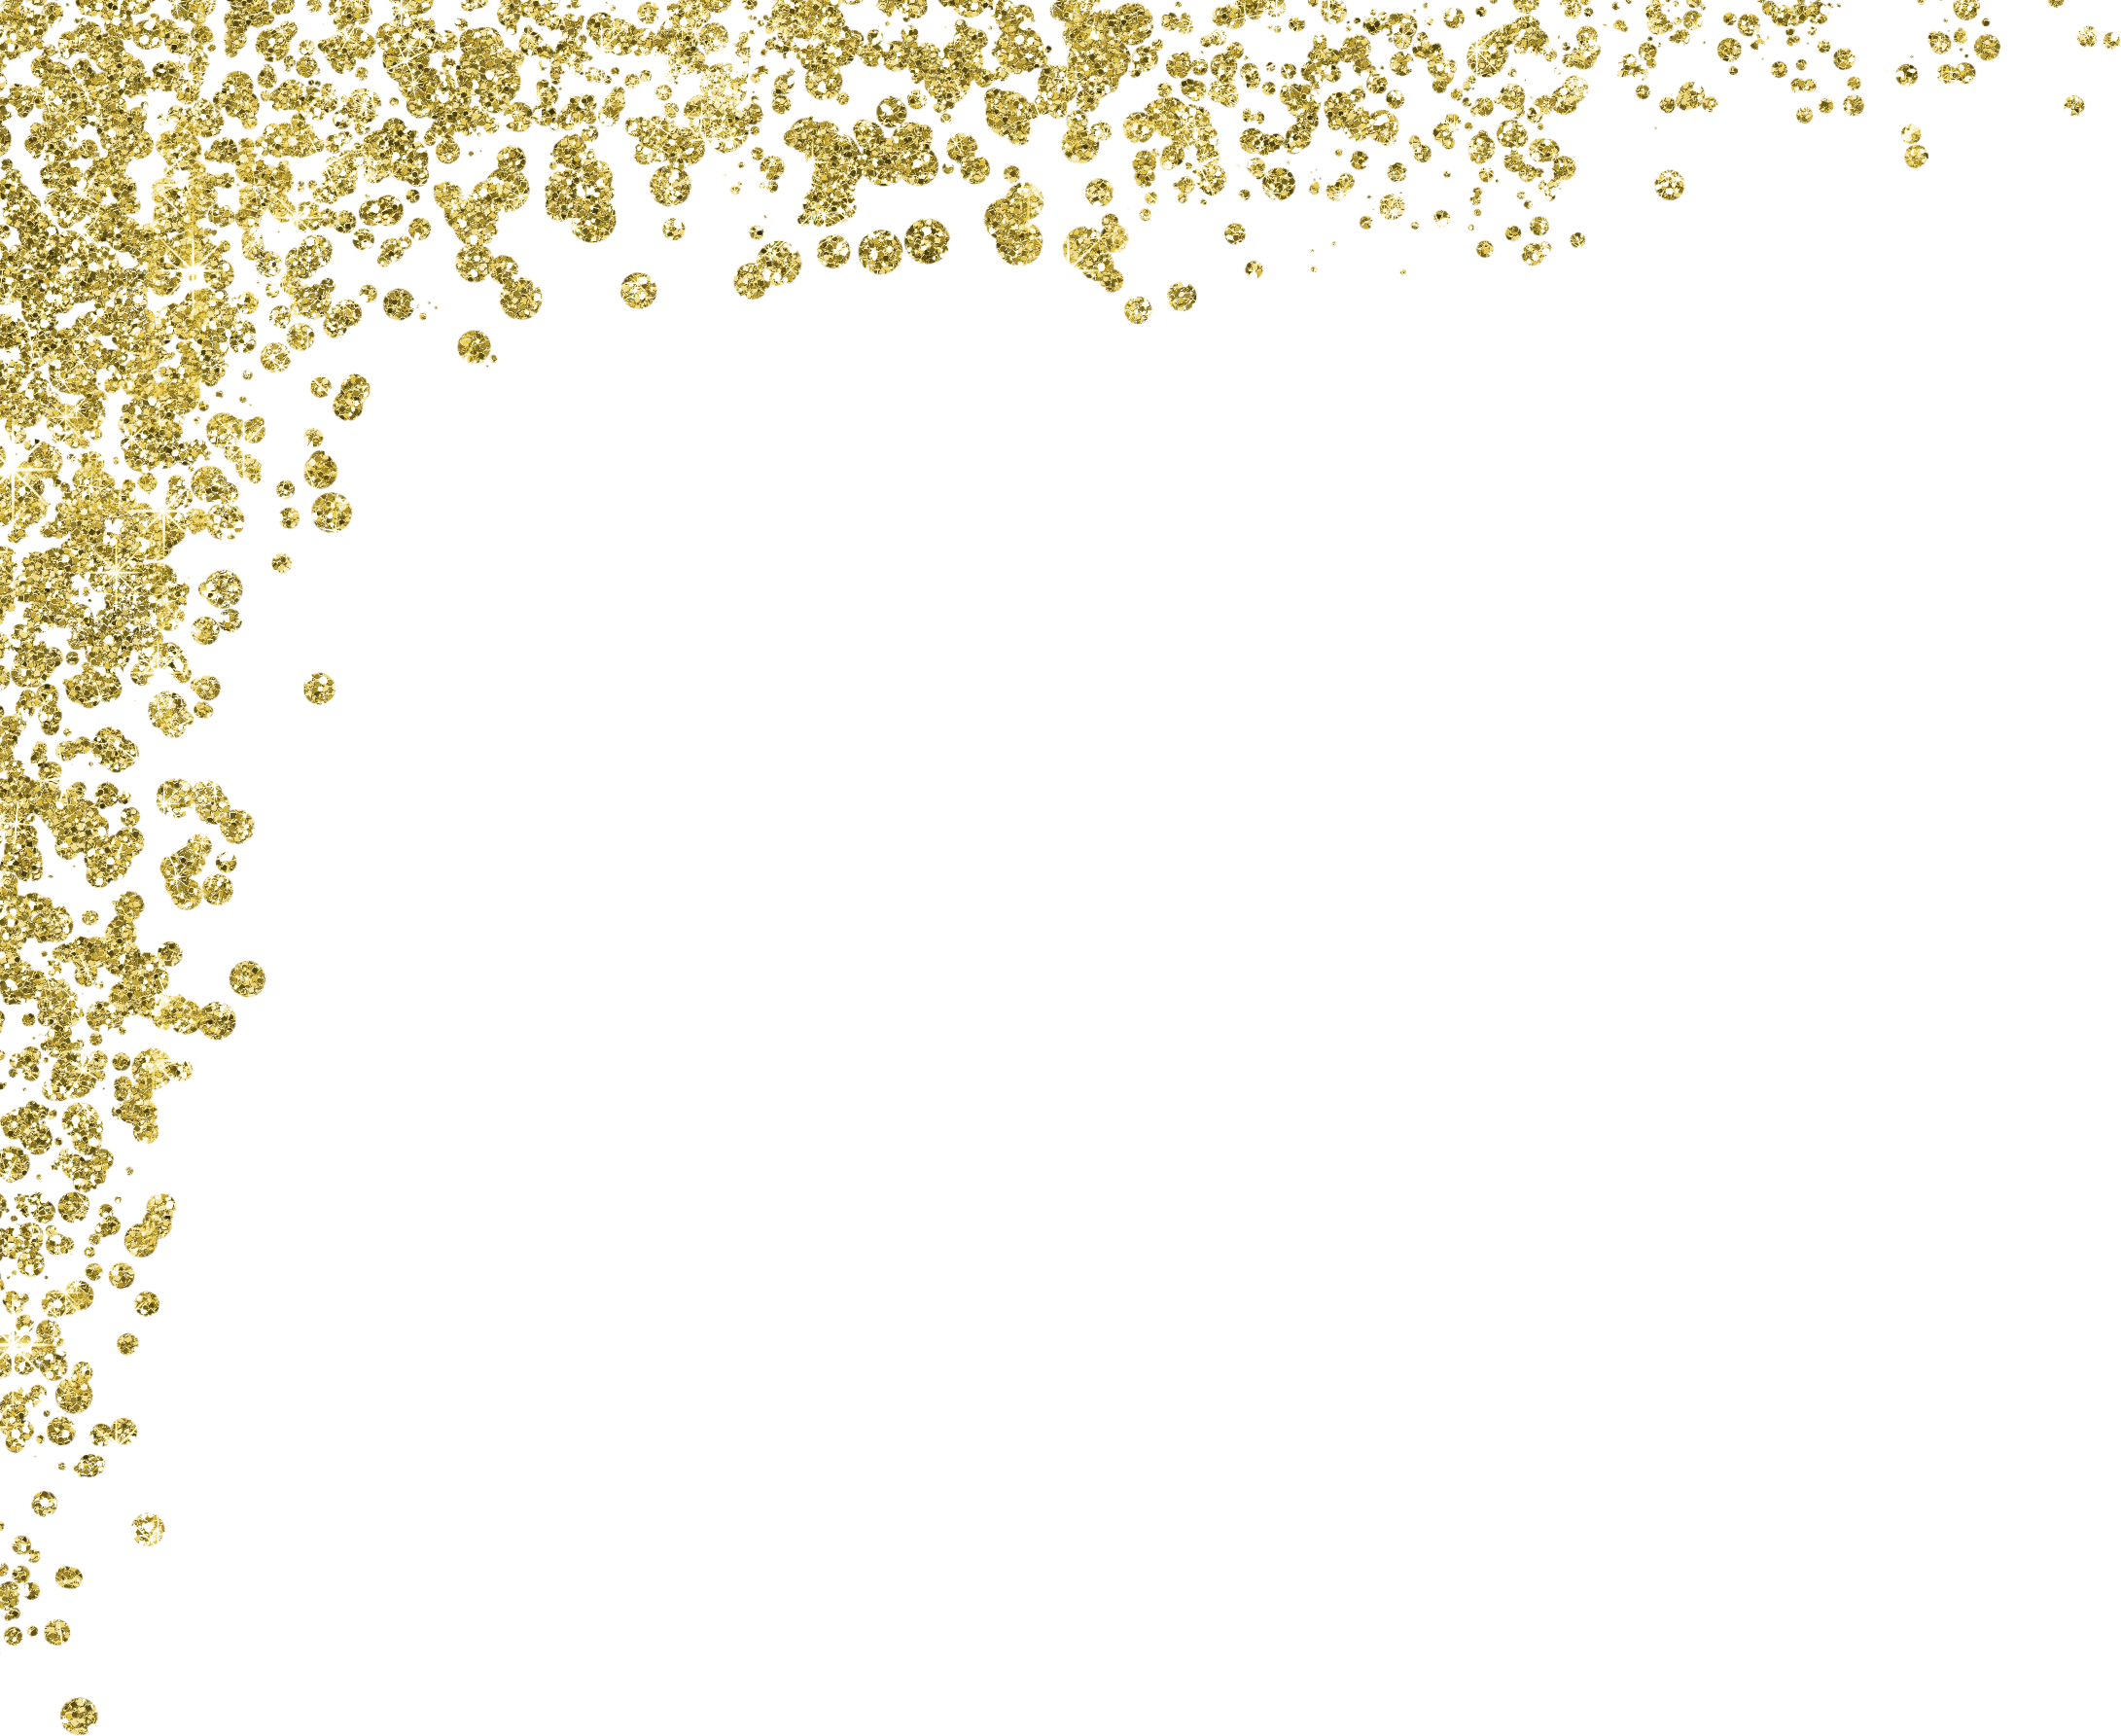 Sparkle photos transparentpng image. Gold glitter overlay png banner free library